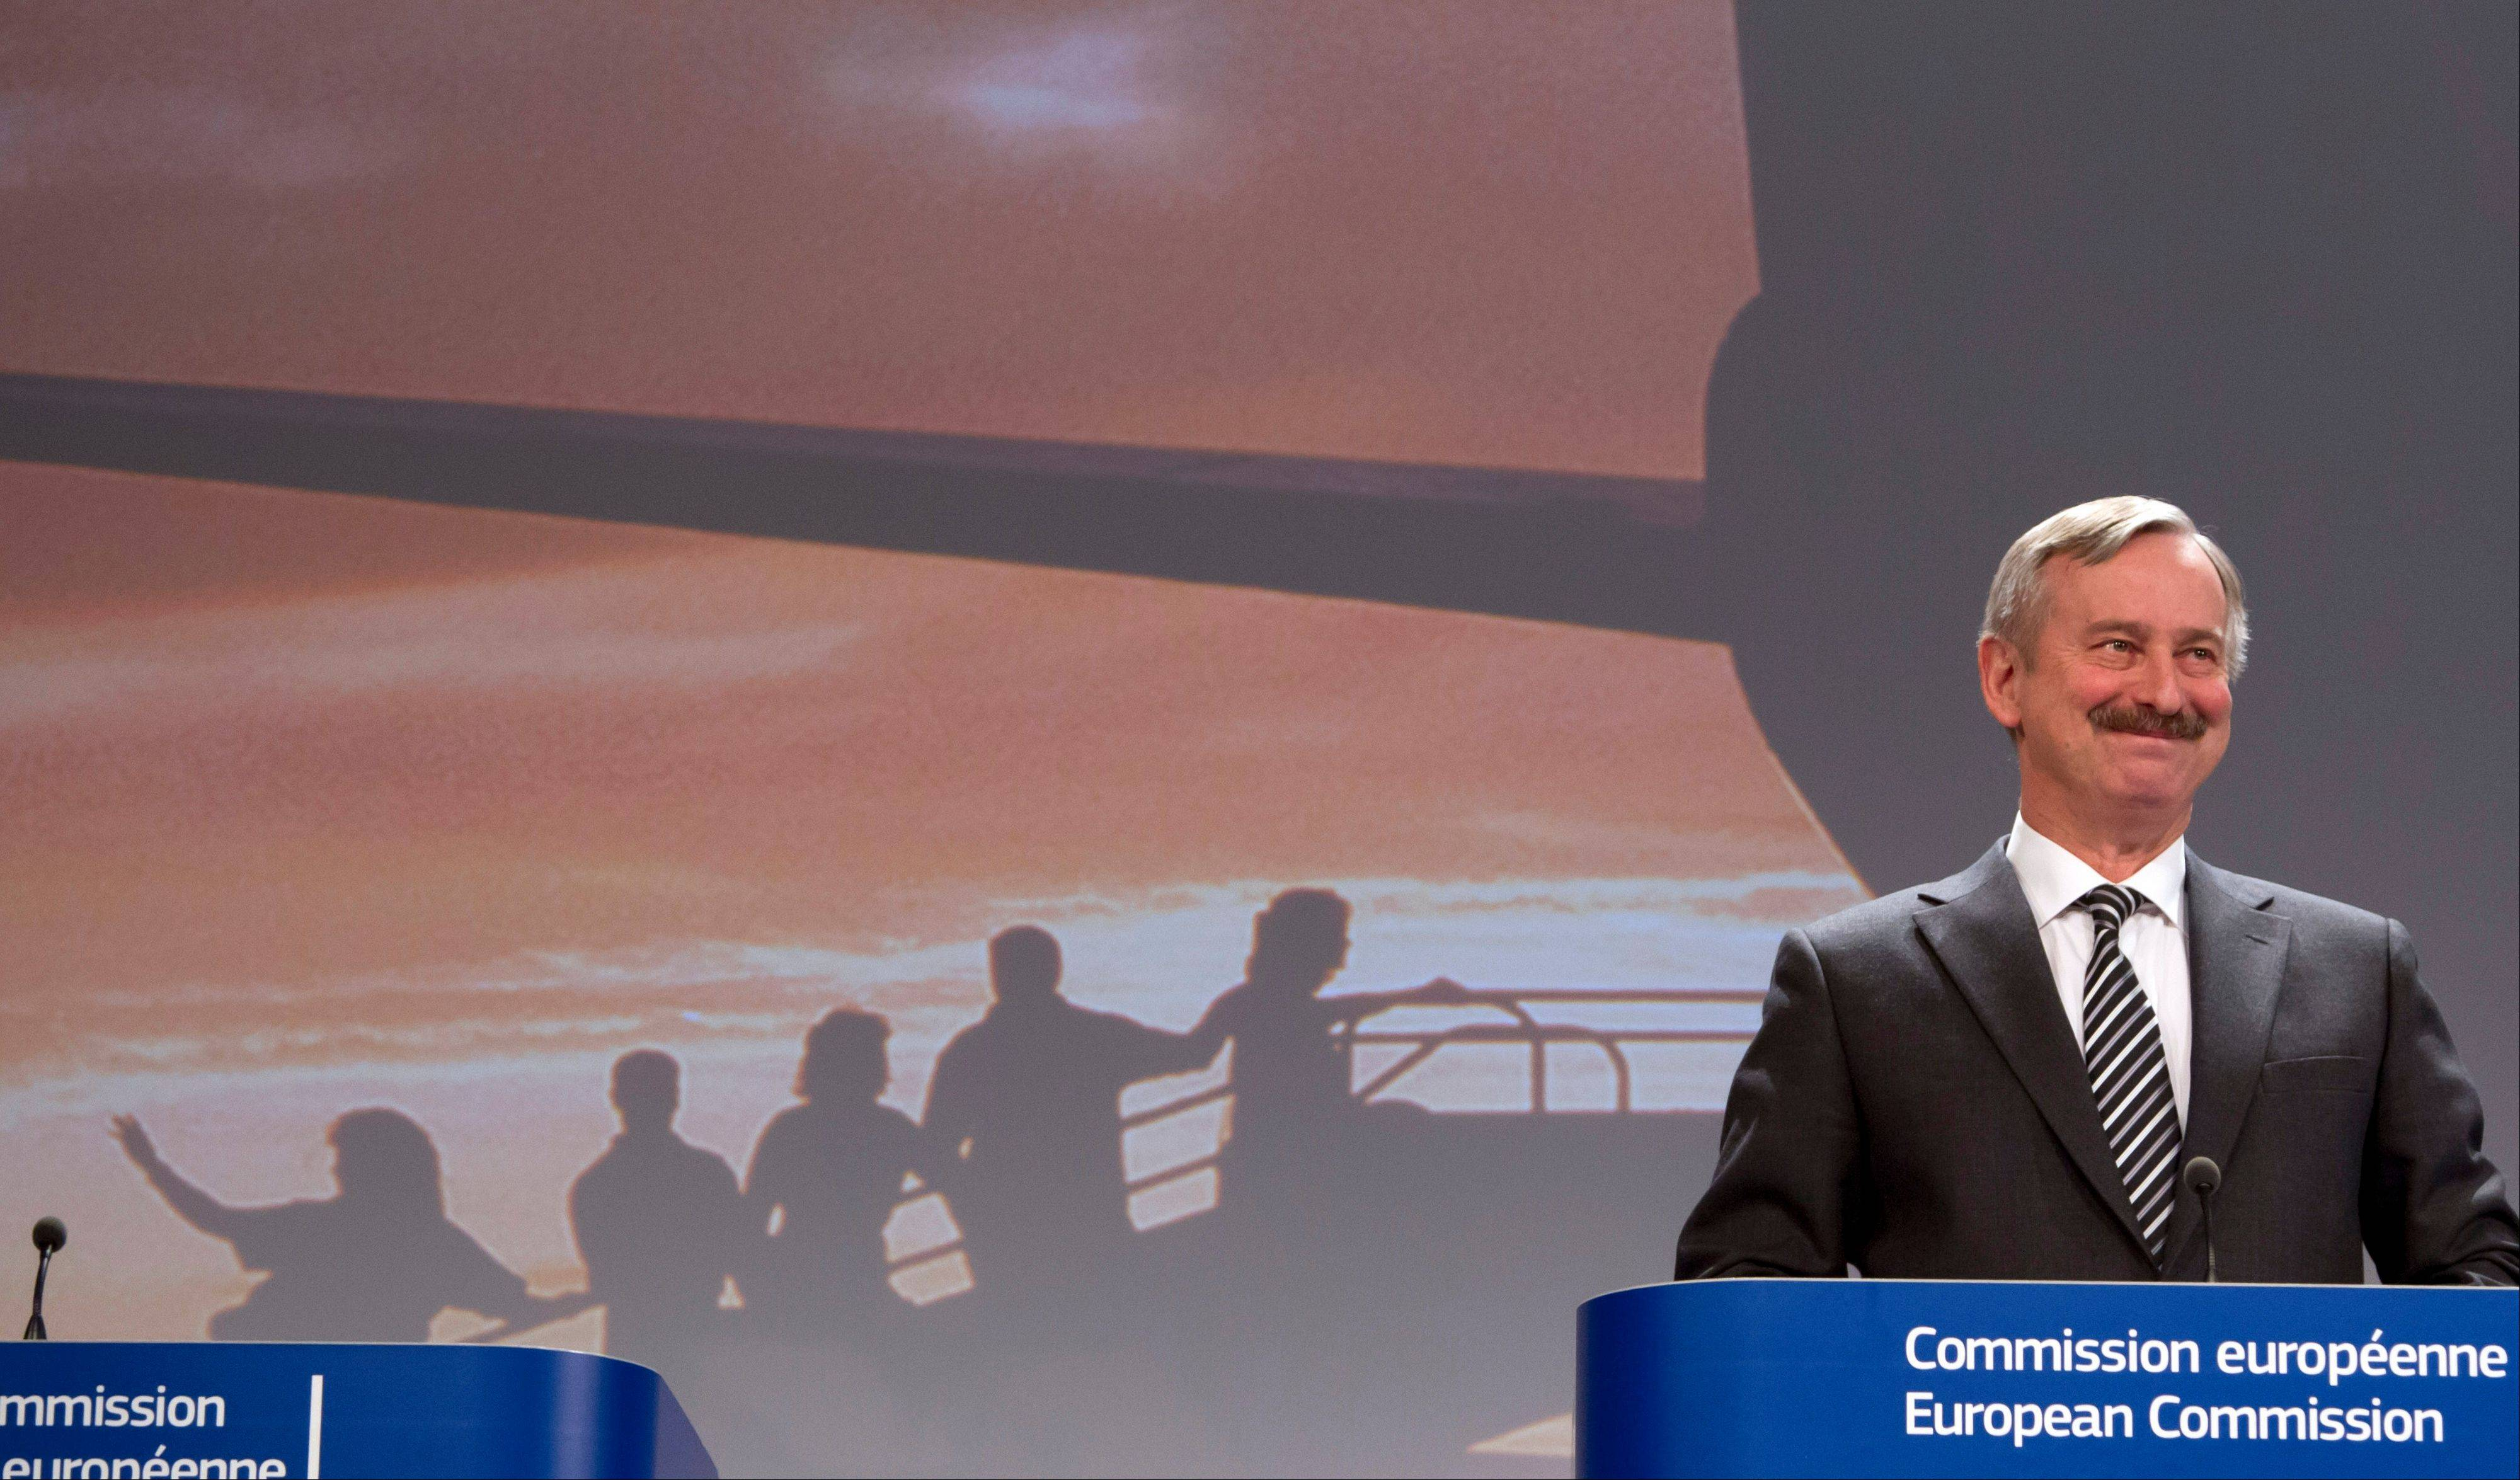 European Commissioner for Transport Siim Kallas speaks during a media conference at EU headquarters in Brussels on Wednesday. The European Union is considering beefed up measures for stranded passengers to get compensation and find quicker ways to get home.